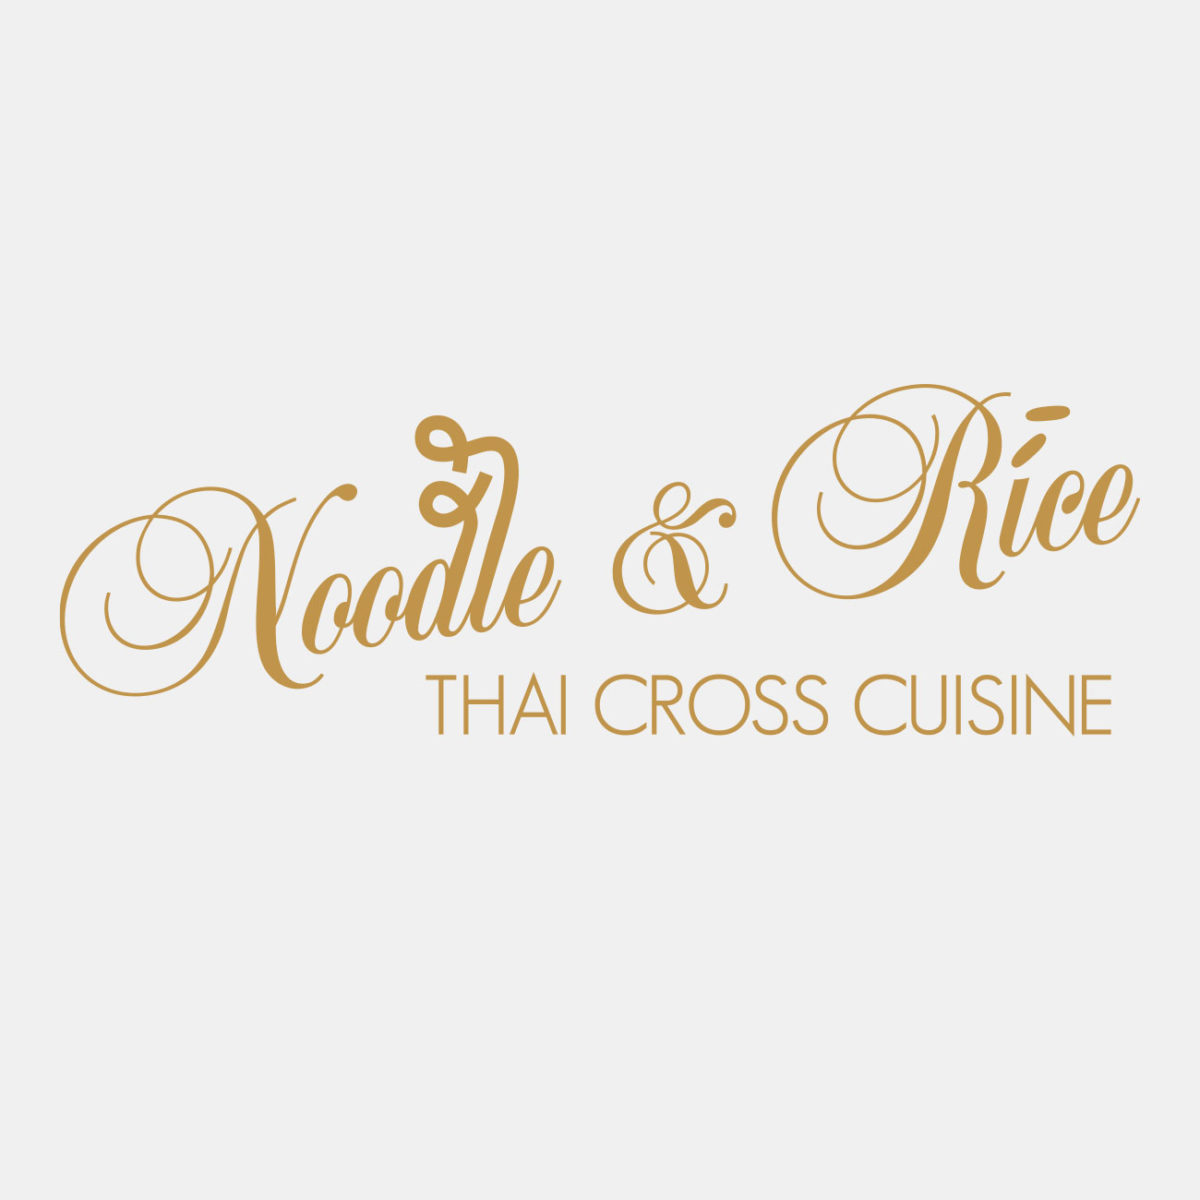 Nopodle & Rice Logodesign